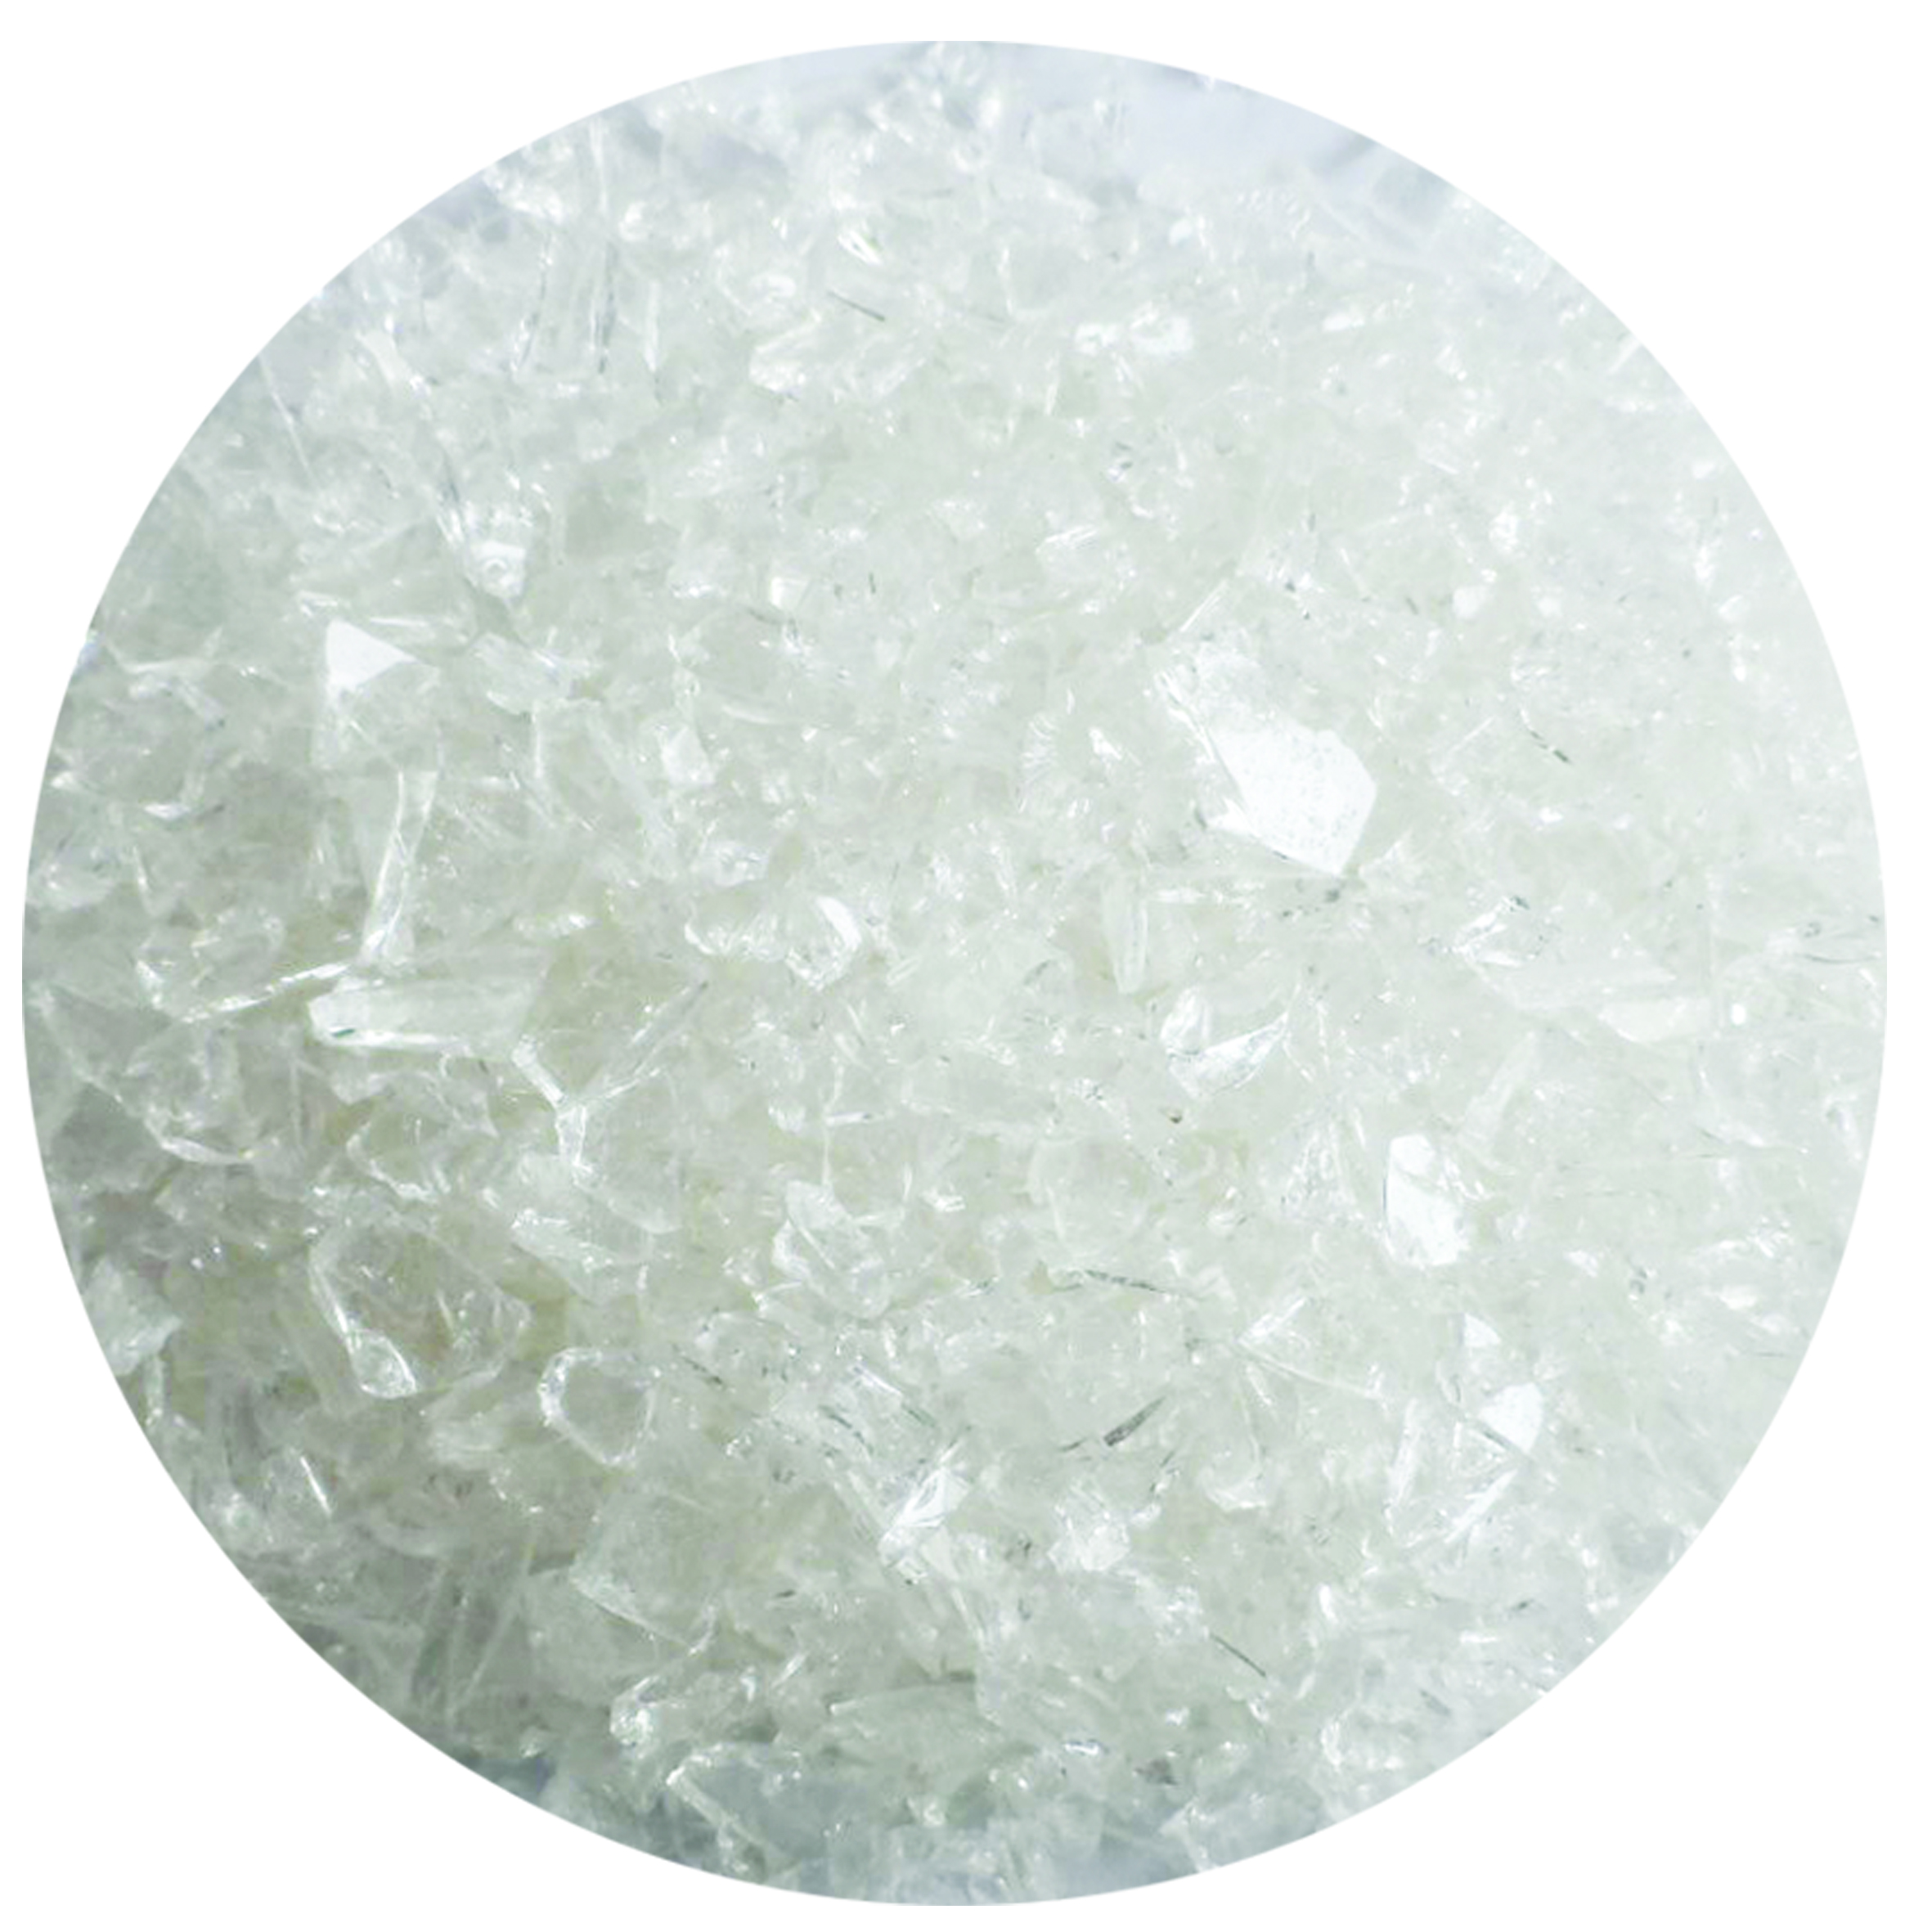 Pure Polyester Resin: LT-9856 99.99% buy